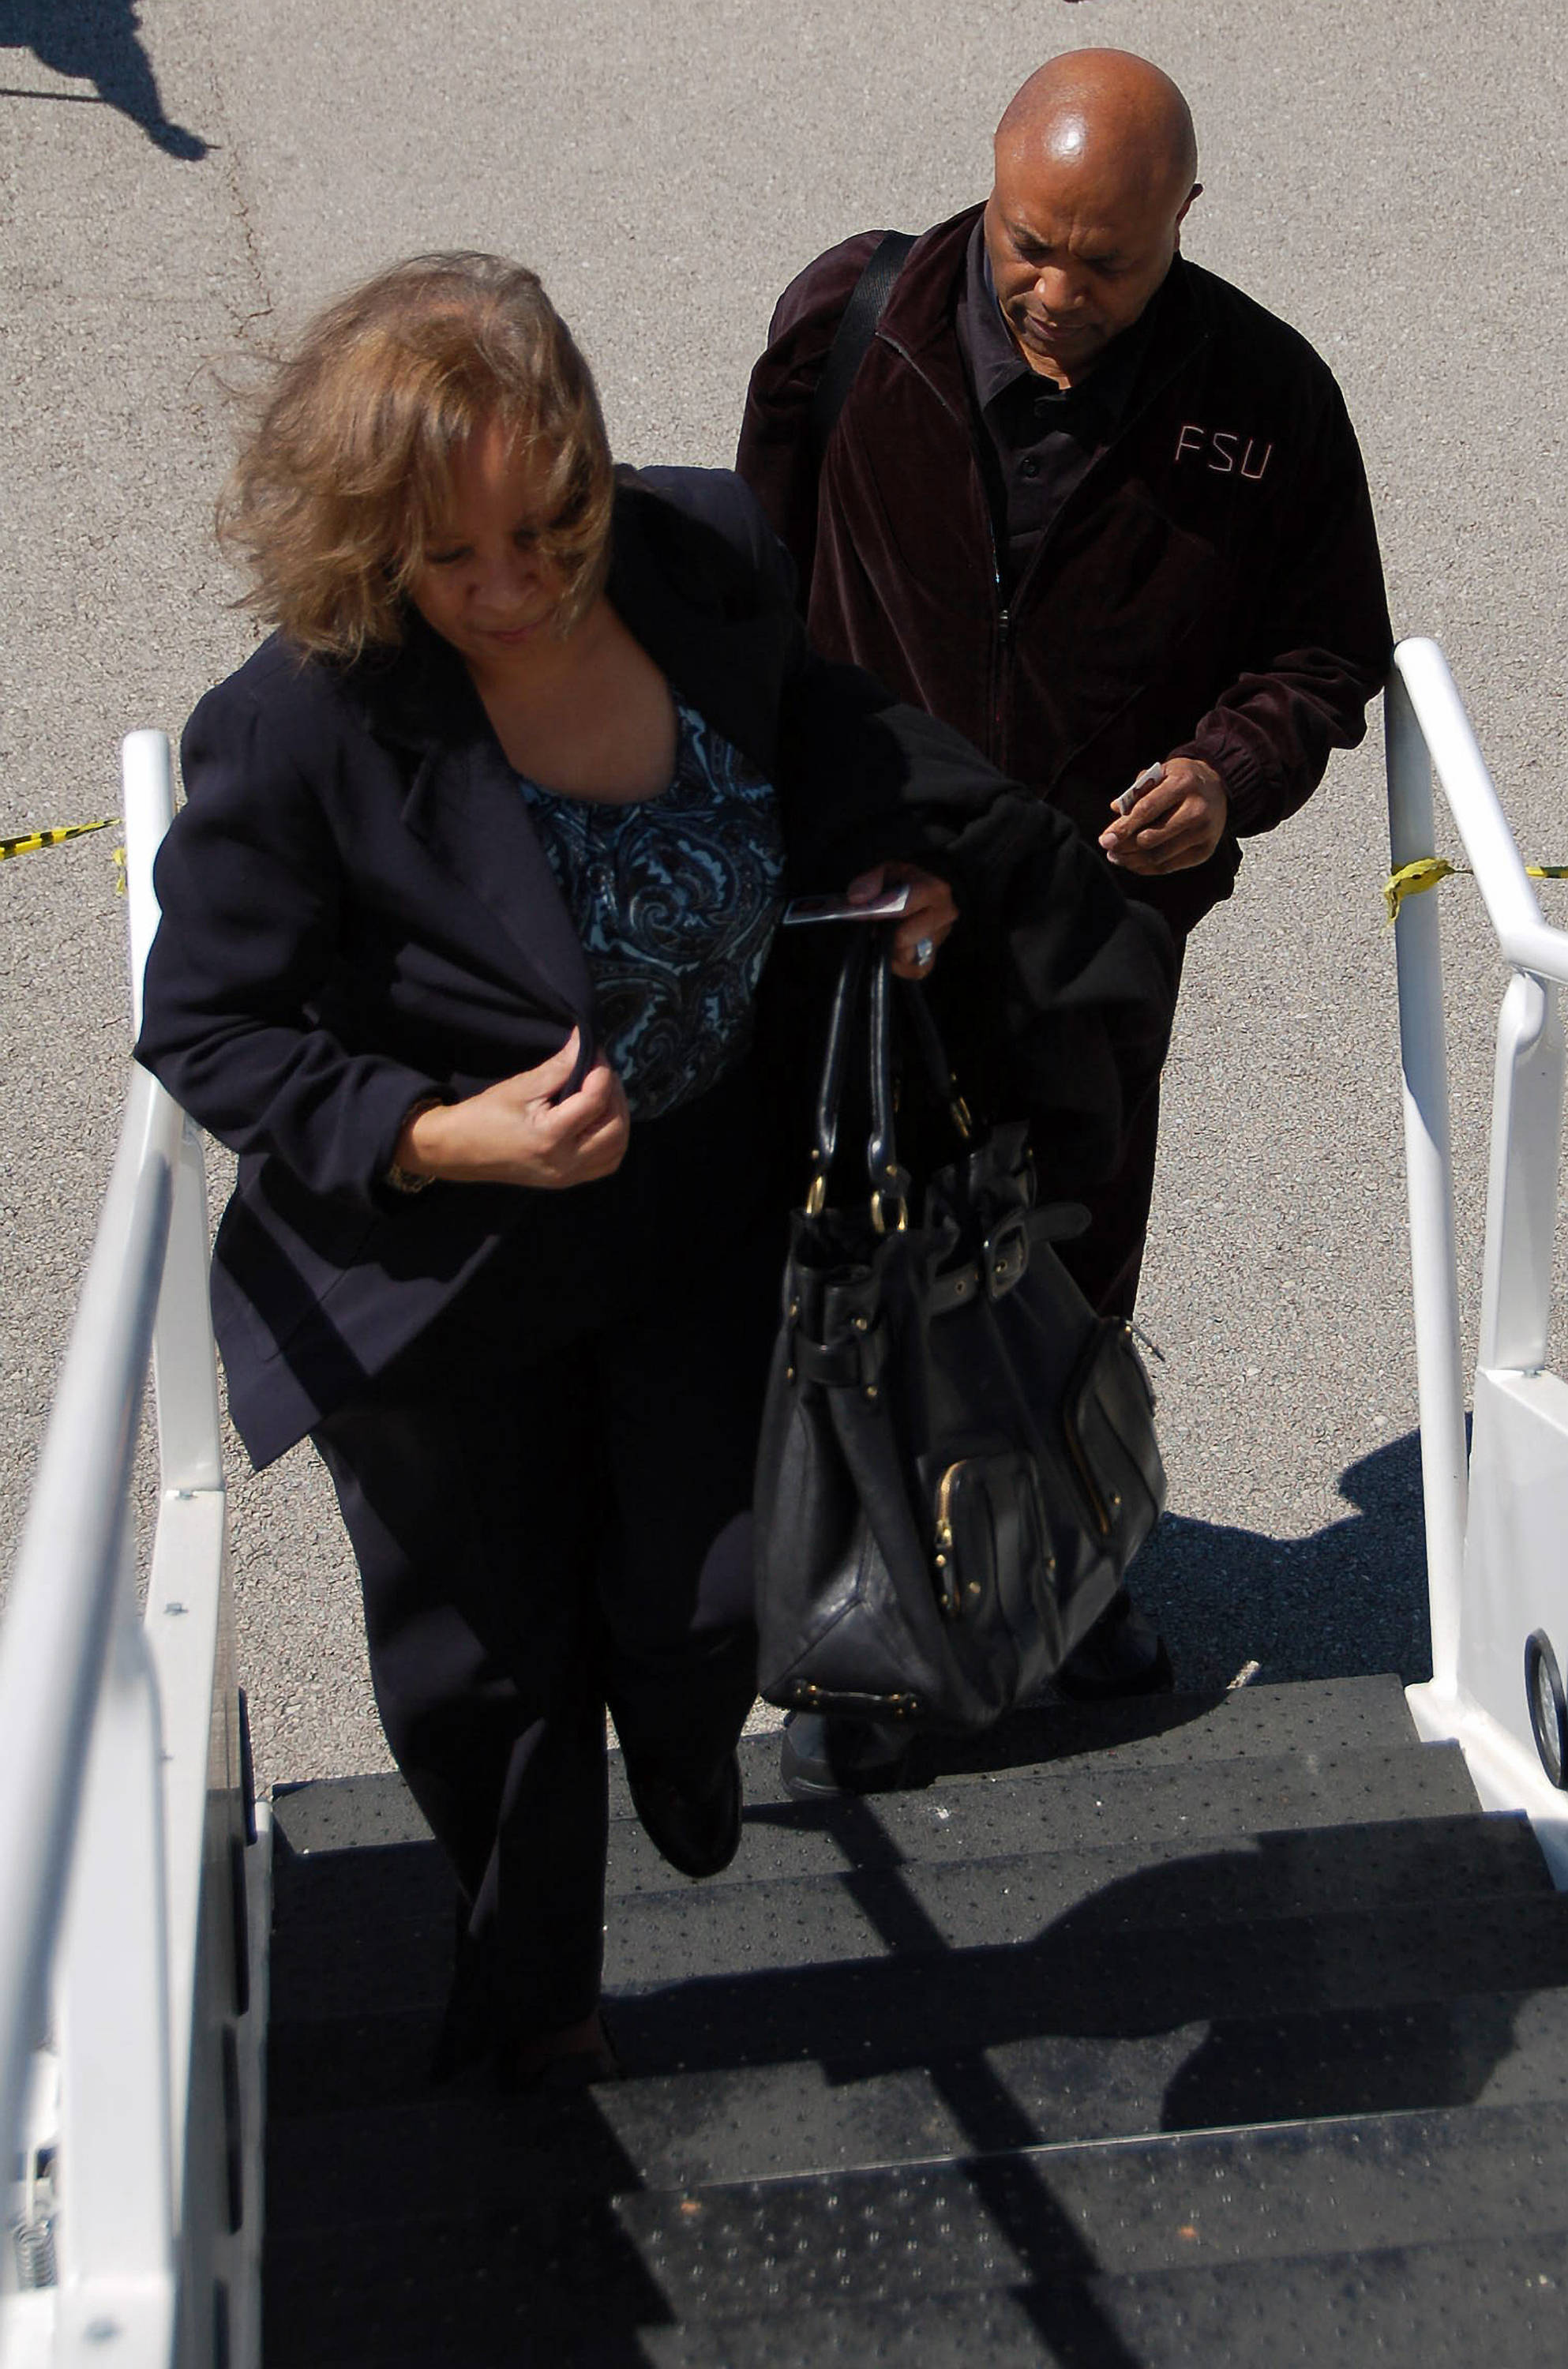 Leonard Hamilton and his wife board the plane in Tallahassee